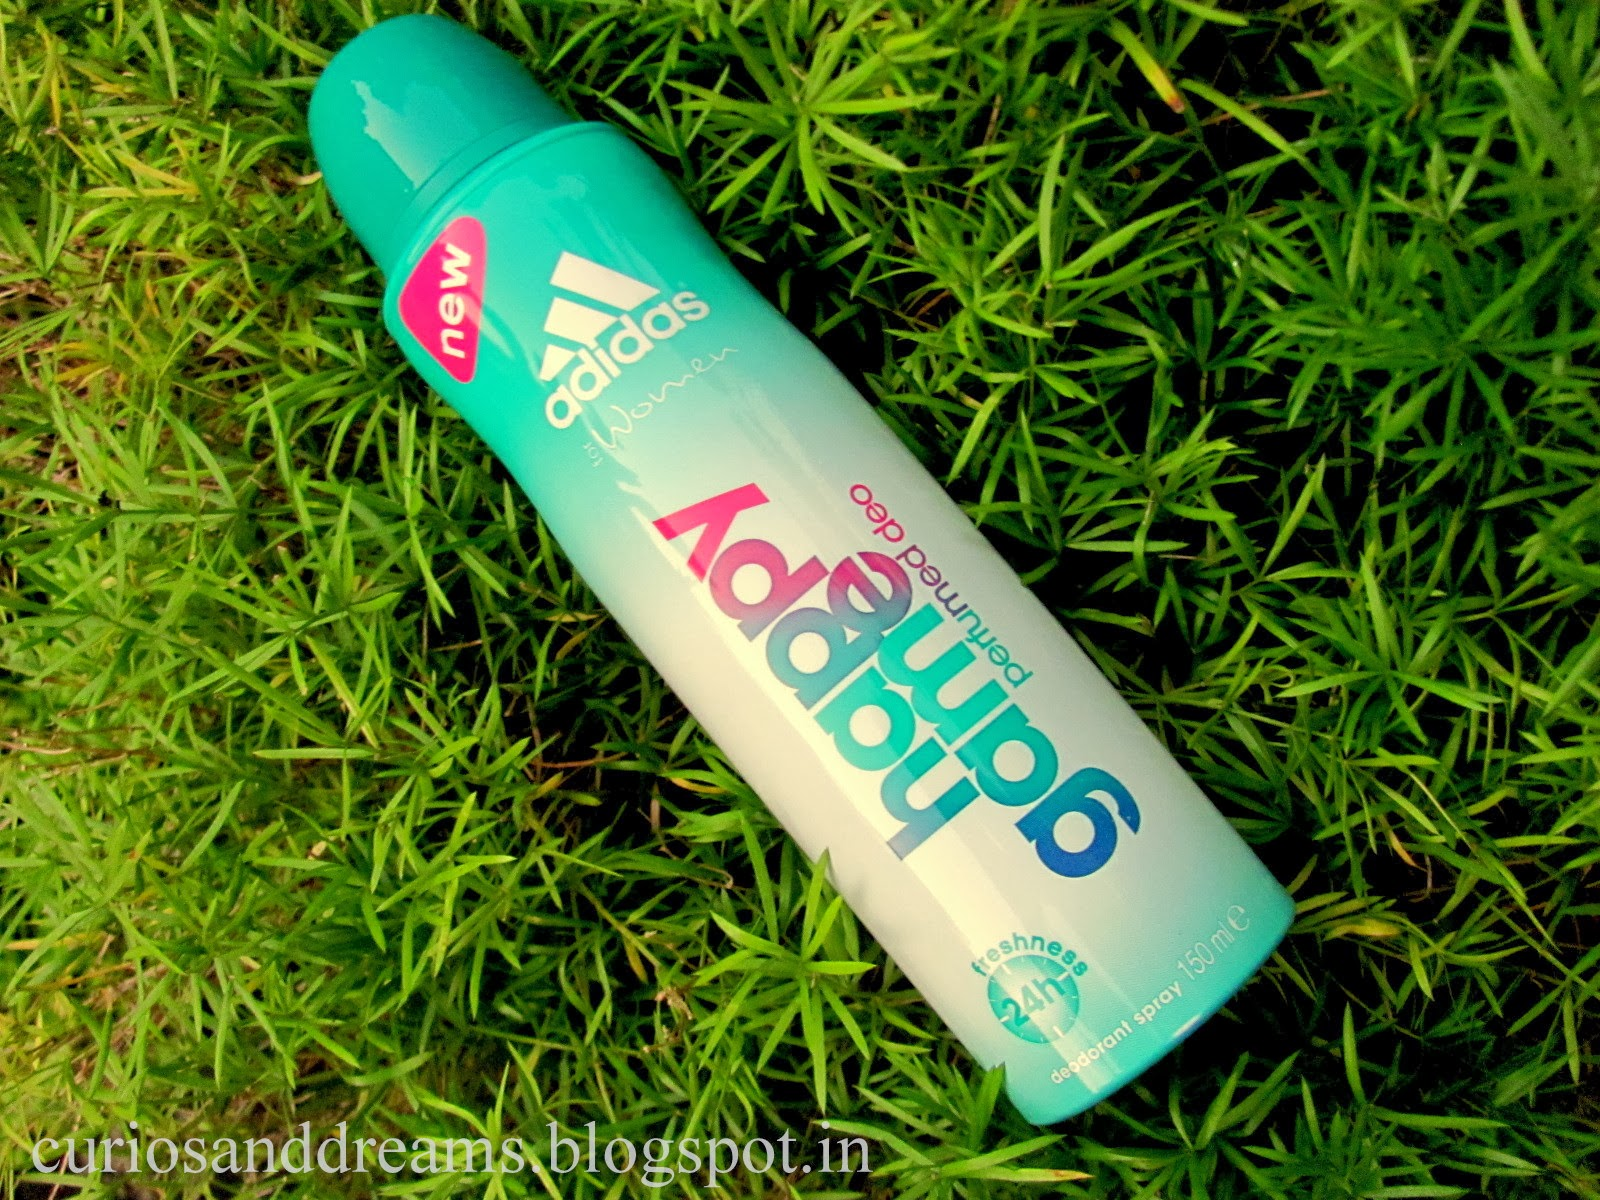 Adidas Happy Game deo review